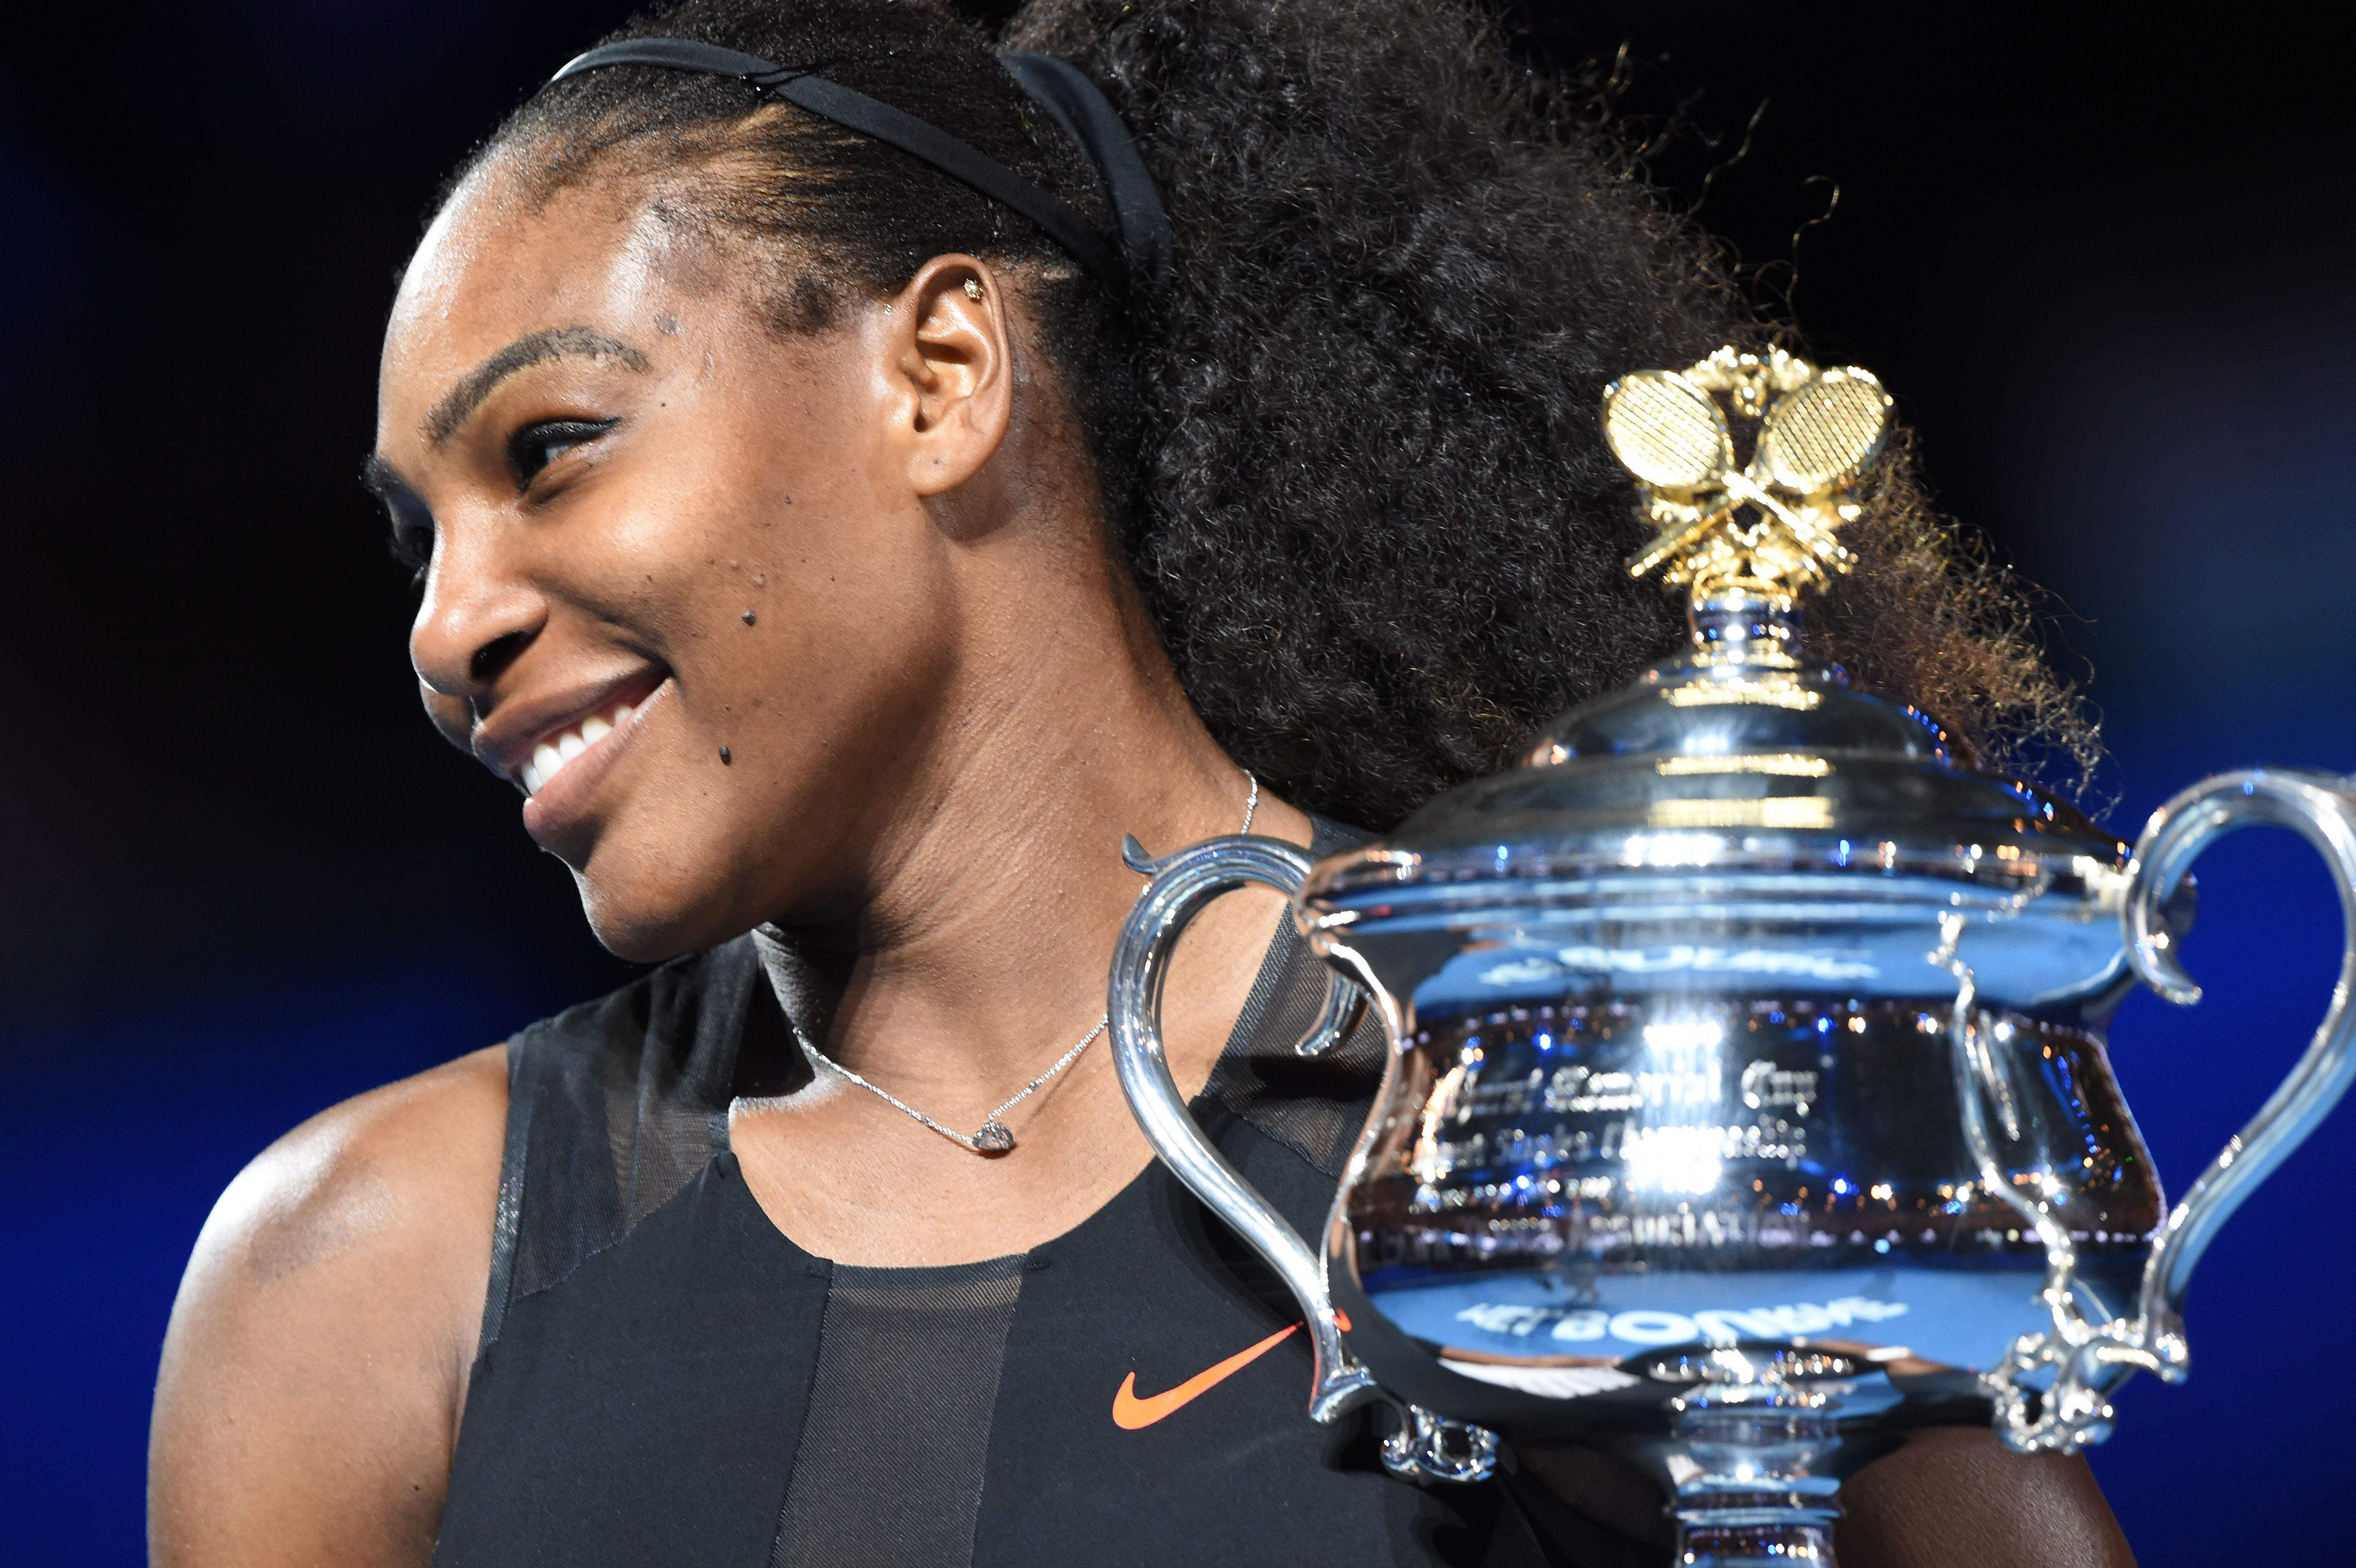 Serena Williams of the US holds up the trophy following her victory over Venus Williams of the US in the women's singles final on day 13 of the Australian Open tennis tournament in Melbourne on January 28, 2017. / AFP / PAUL CROCK / IMAGE RESTRICTED TO EDITORIAL USE - STRICTLY NO COMMERCIAL USE (Photo credit should read PAUL CROCK/AFP/Getty Images)